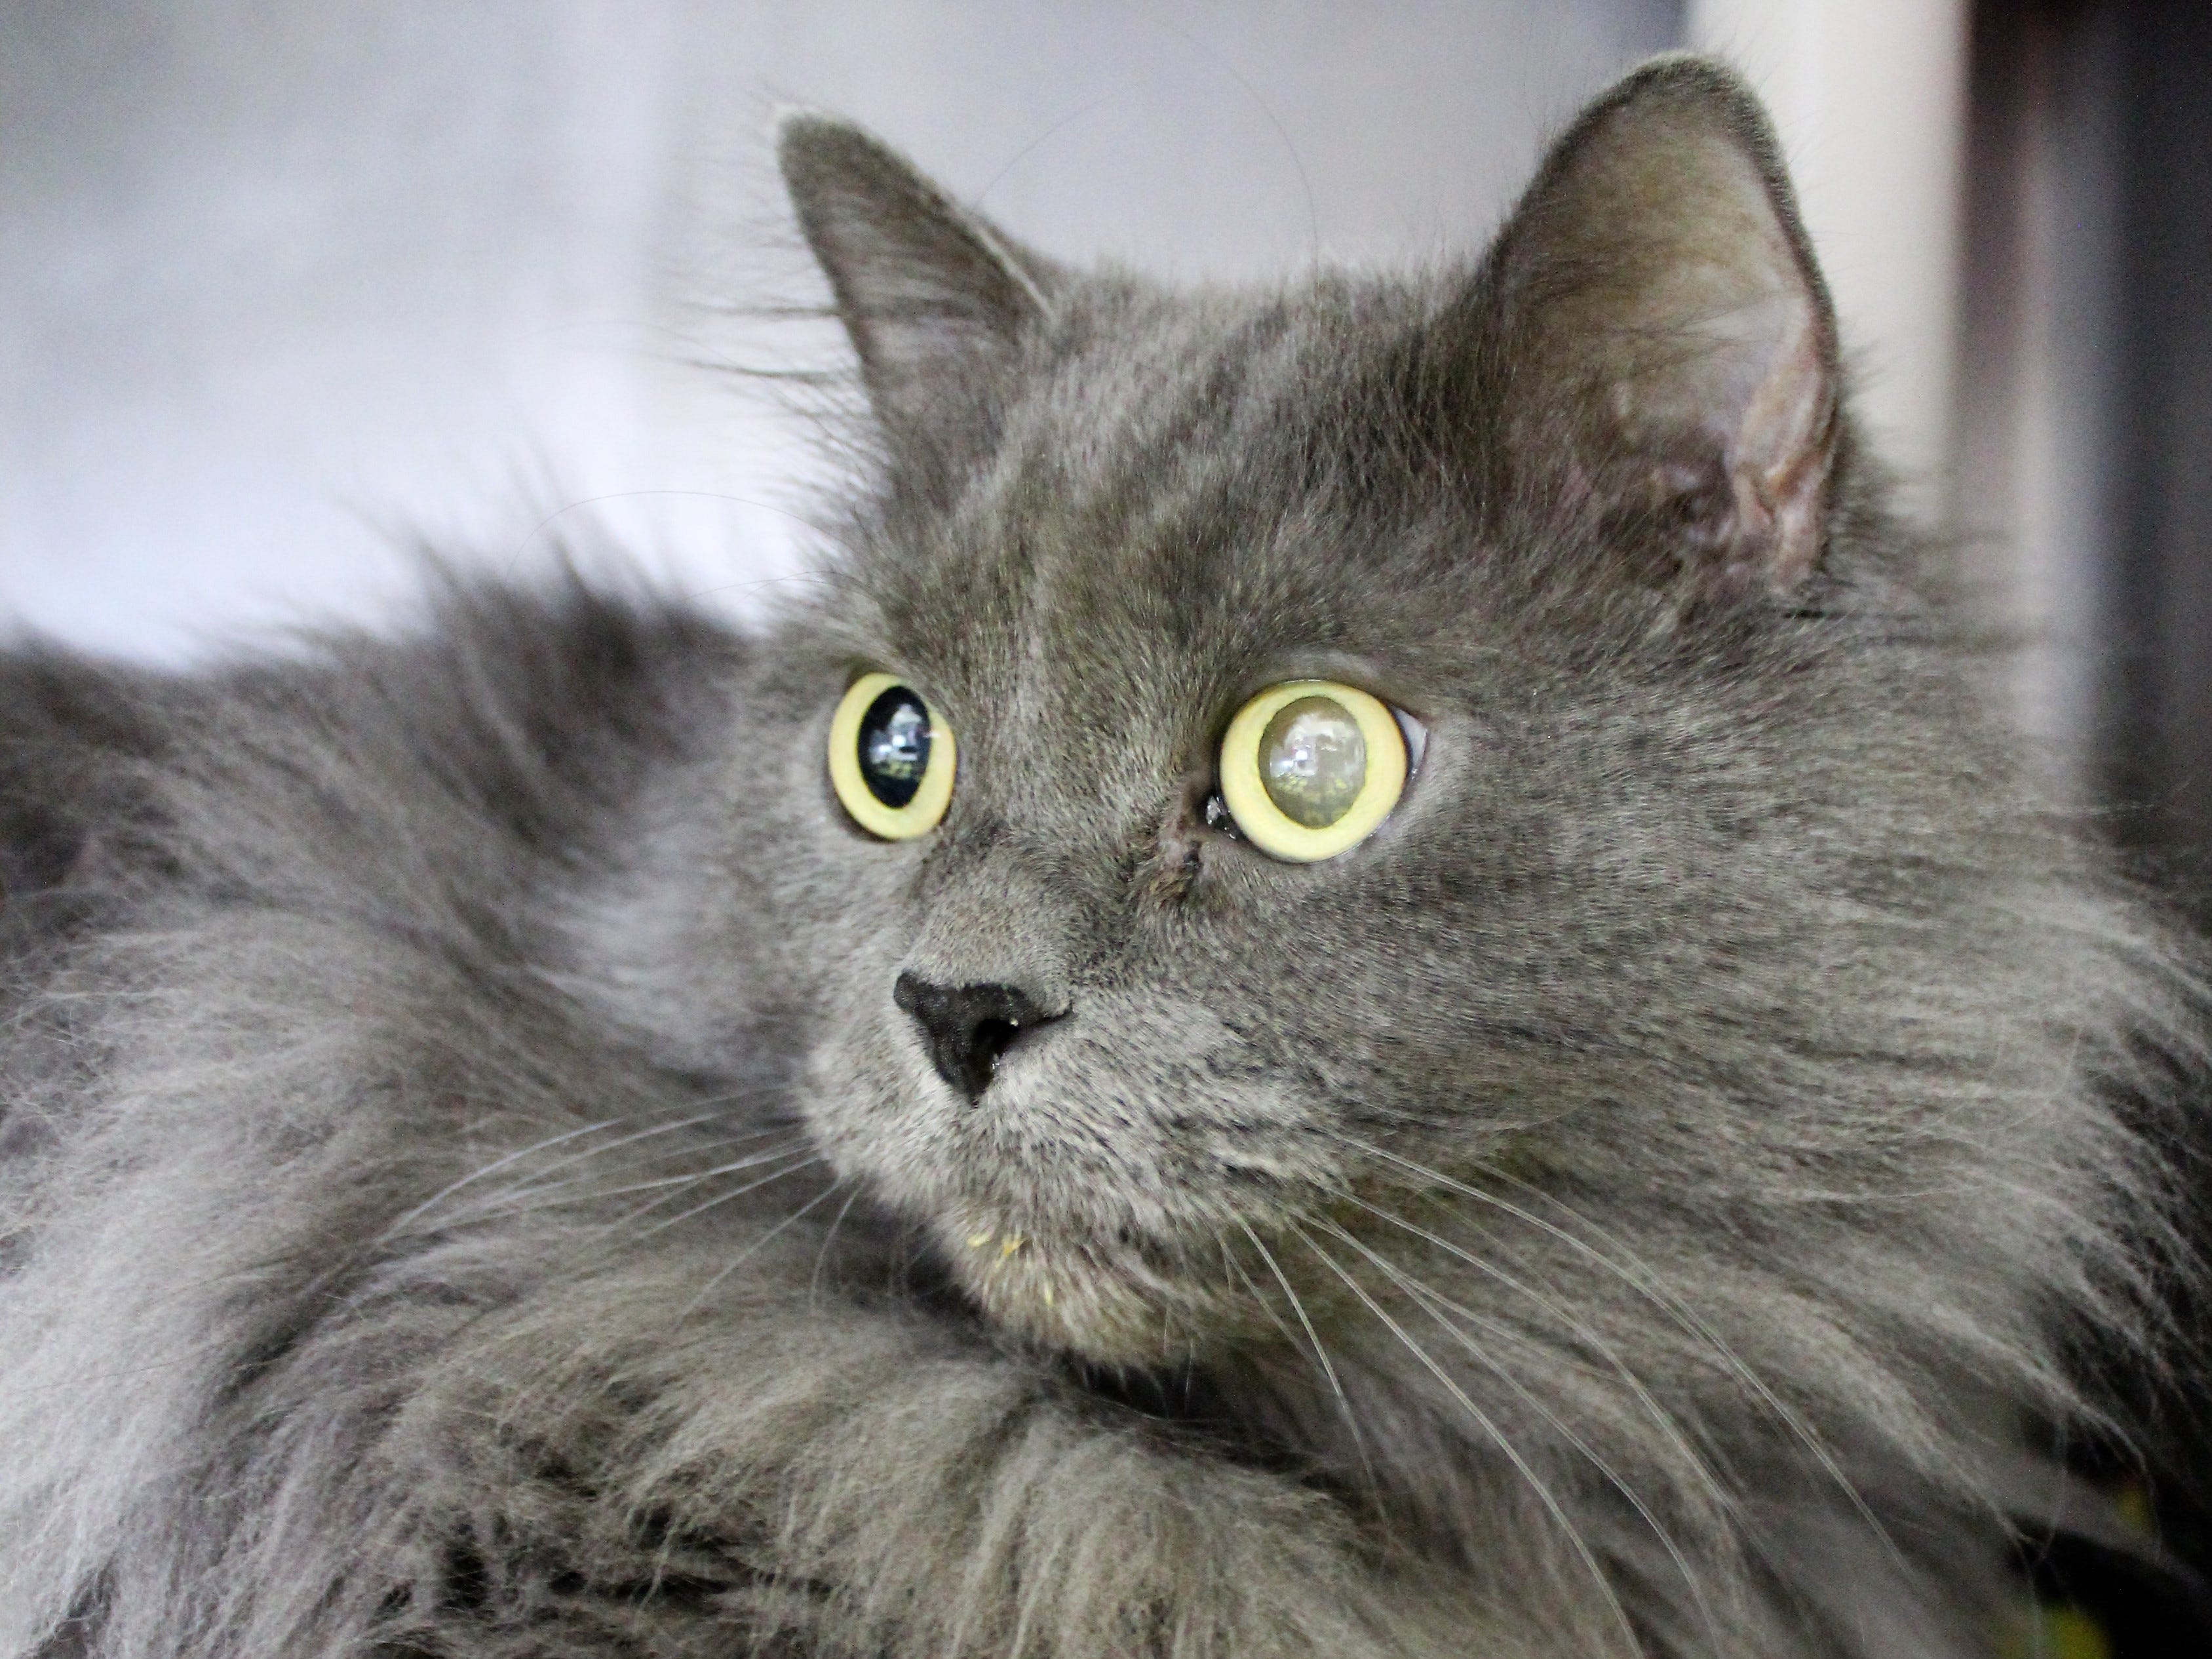 Rain is an 11-year-old longhaired female. She loves to be brushed, and gives sweet kisses to the people she really loves. Rain has been the only pet for all of her life, and she really dislikes dogs. To find out more, call Willamette Humane Society at 503-585-5900 or visit www.whs4pets.org.